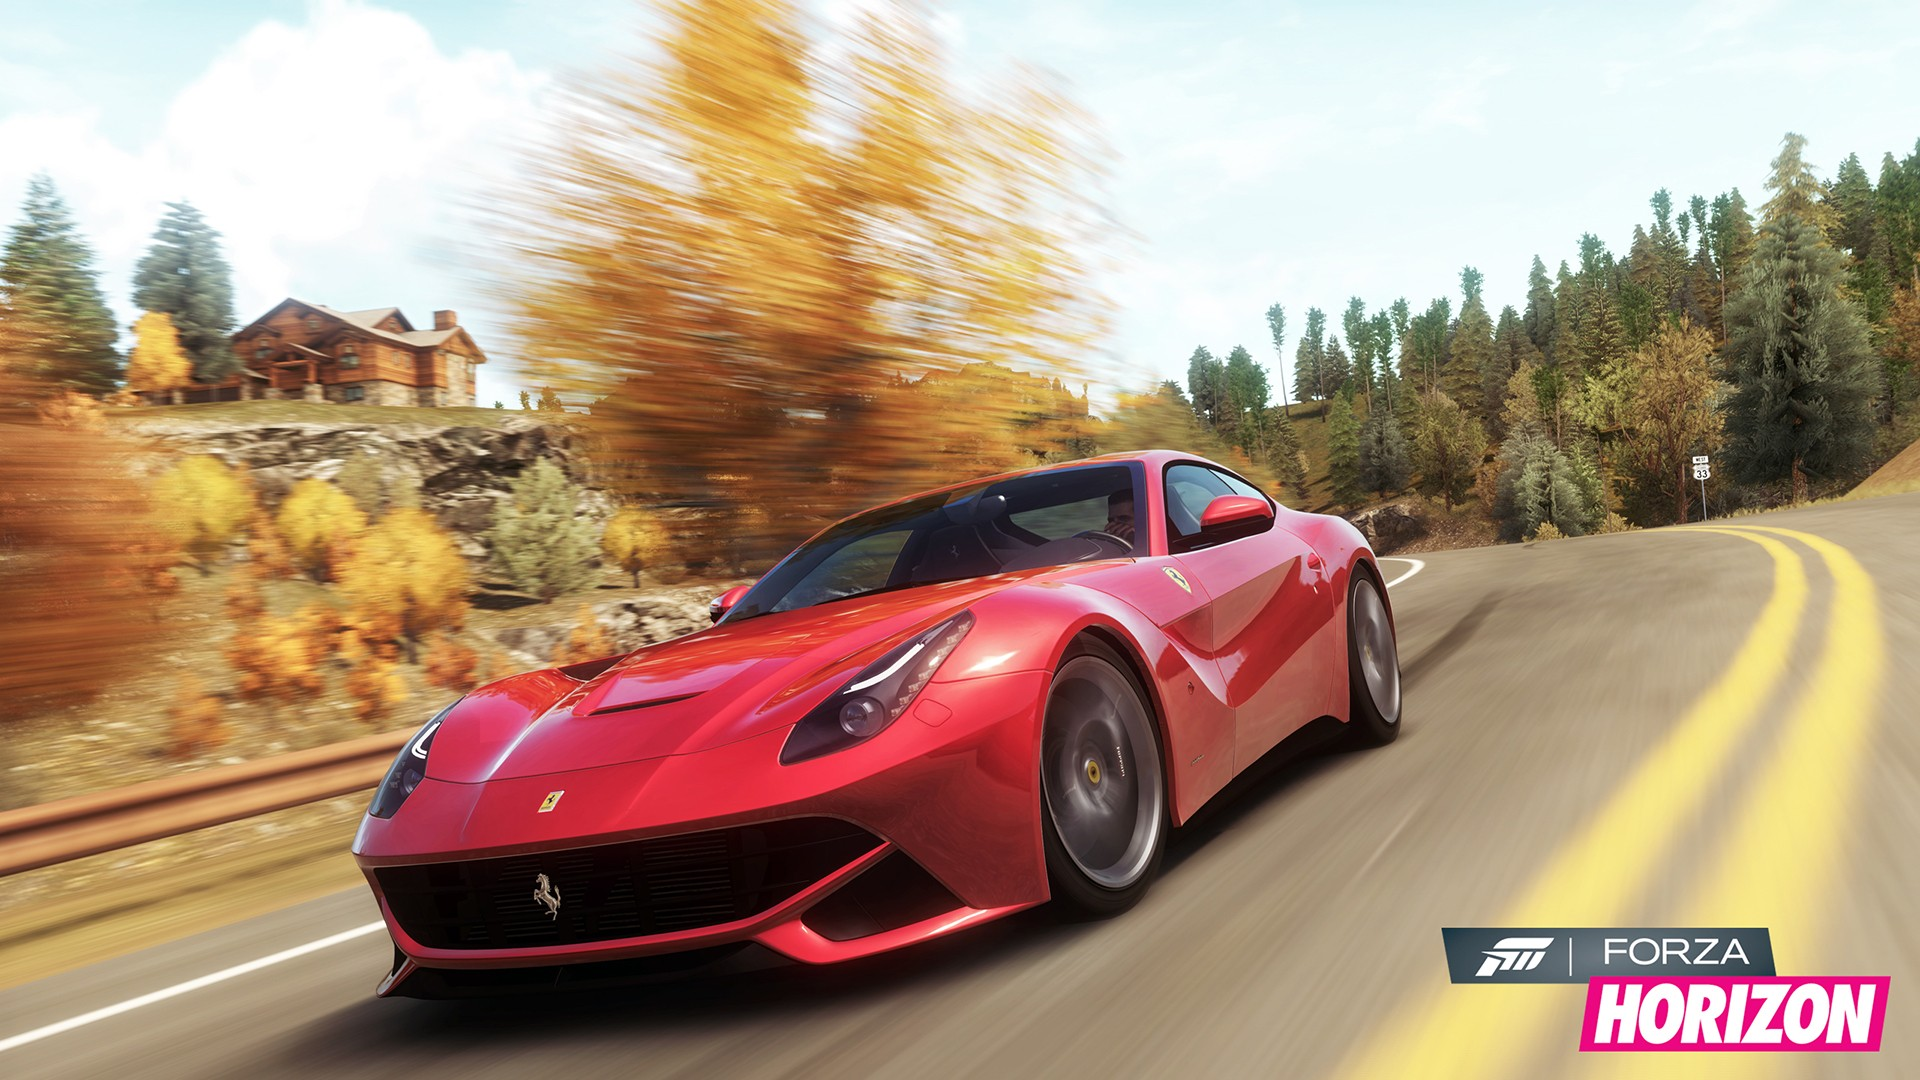 26 forza horizon hd wallpapers backgrounds wallpaper abyss